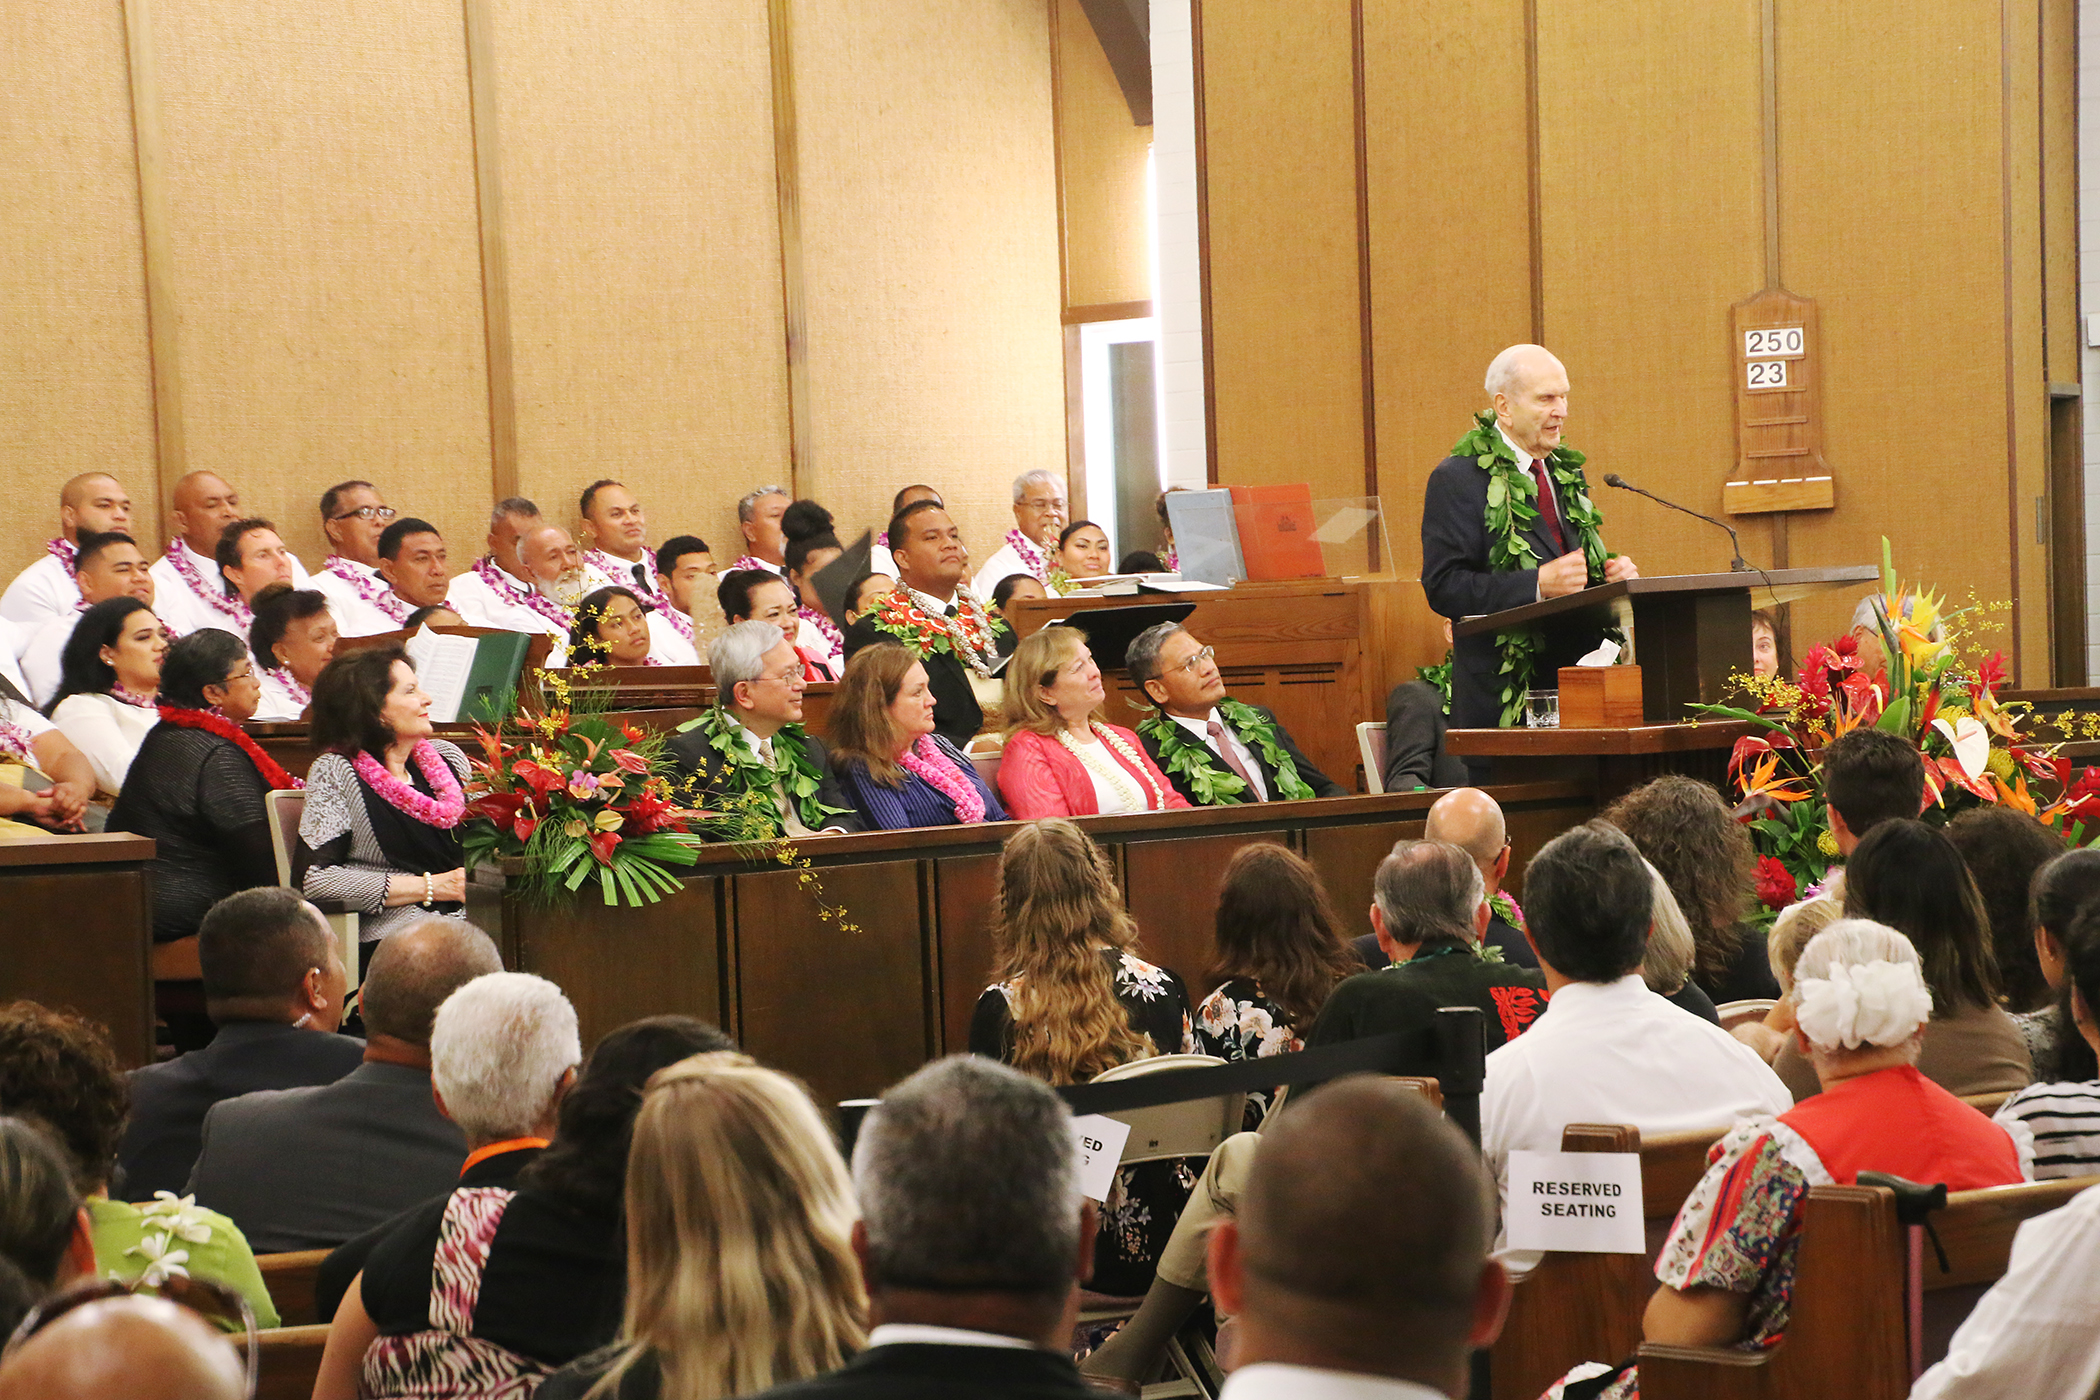 President Russell M. Nelson addresses a capacity crowd in the Kona Hawaii Stake Center on May 16, 2019, on the first stop on his nine-day Pacific ministry tour.